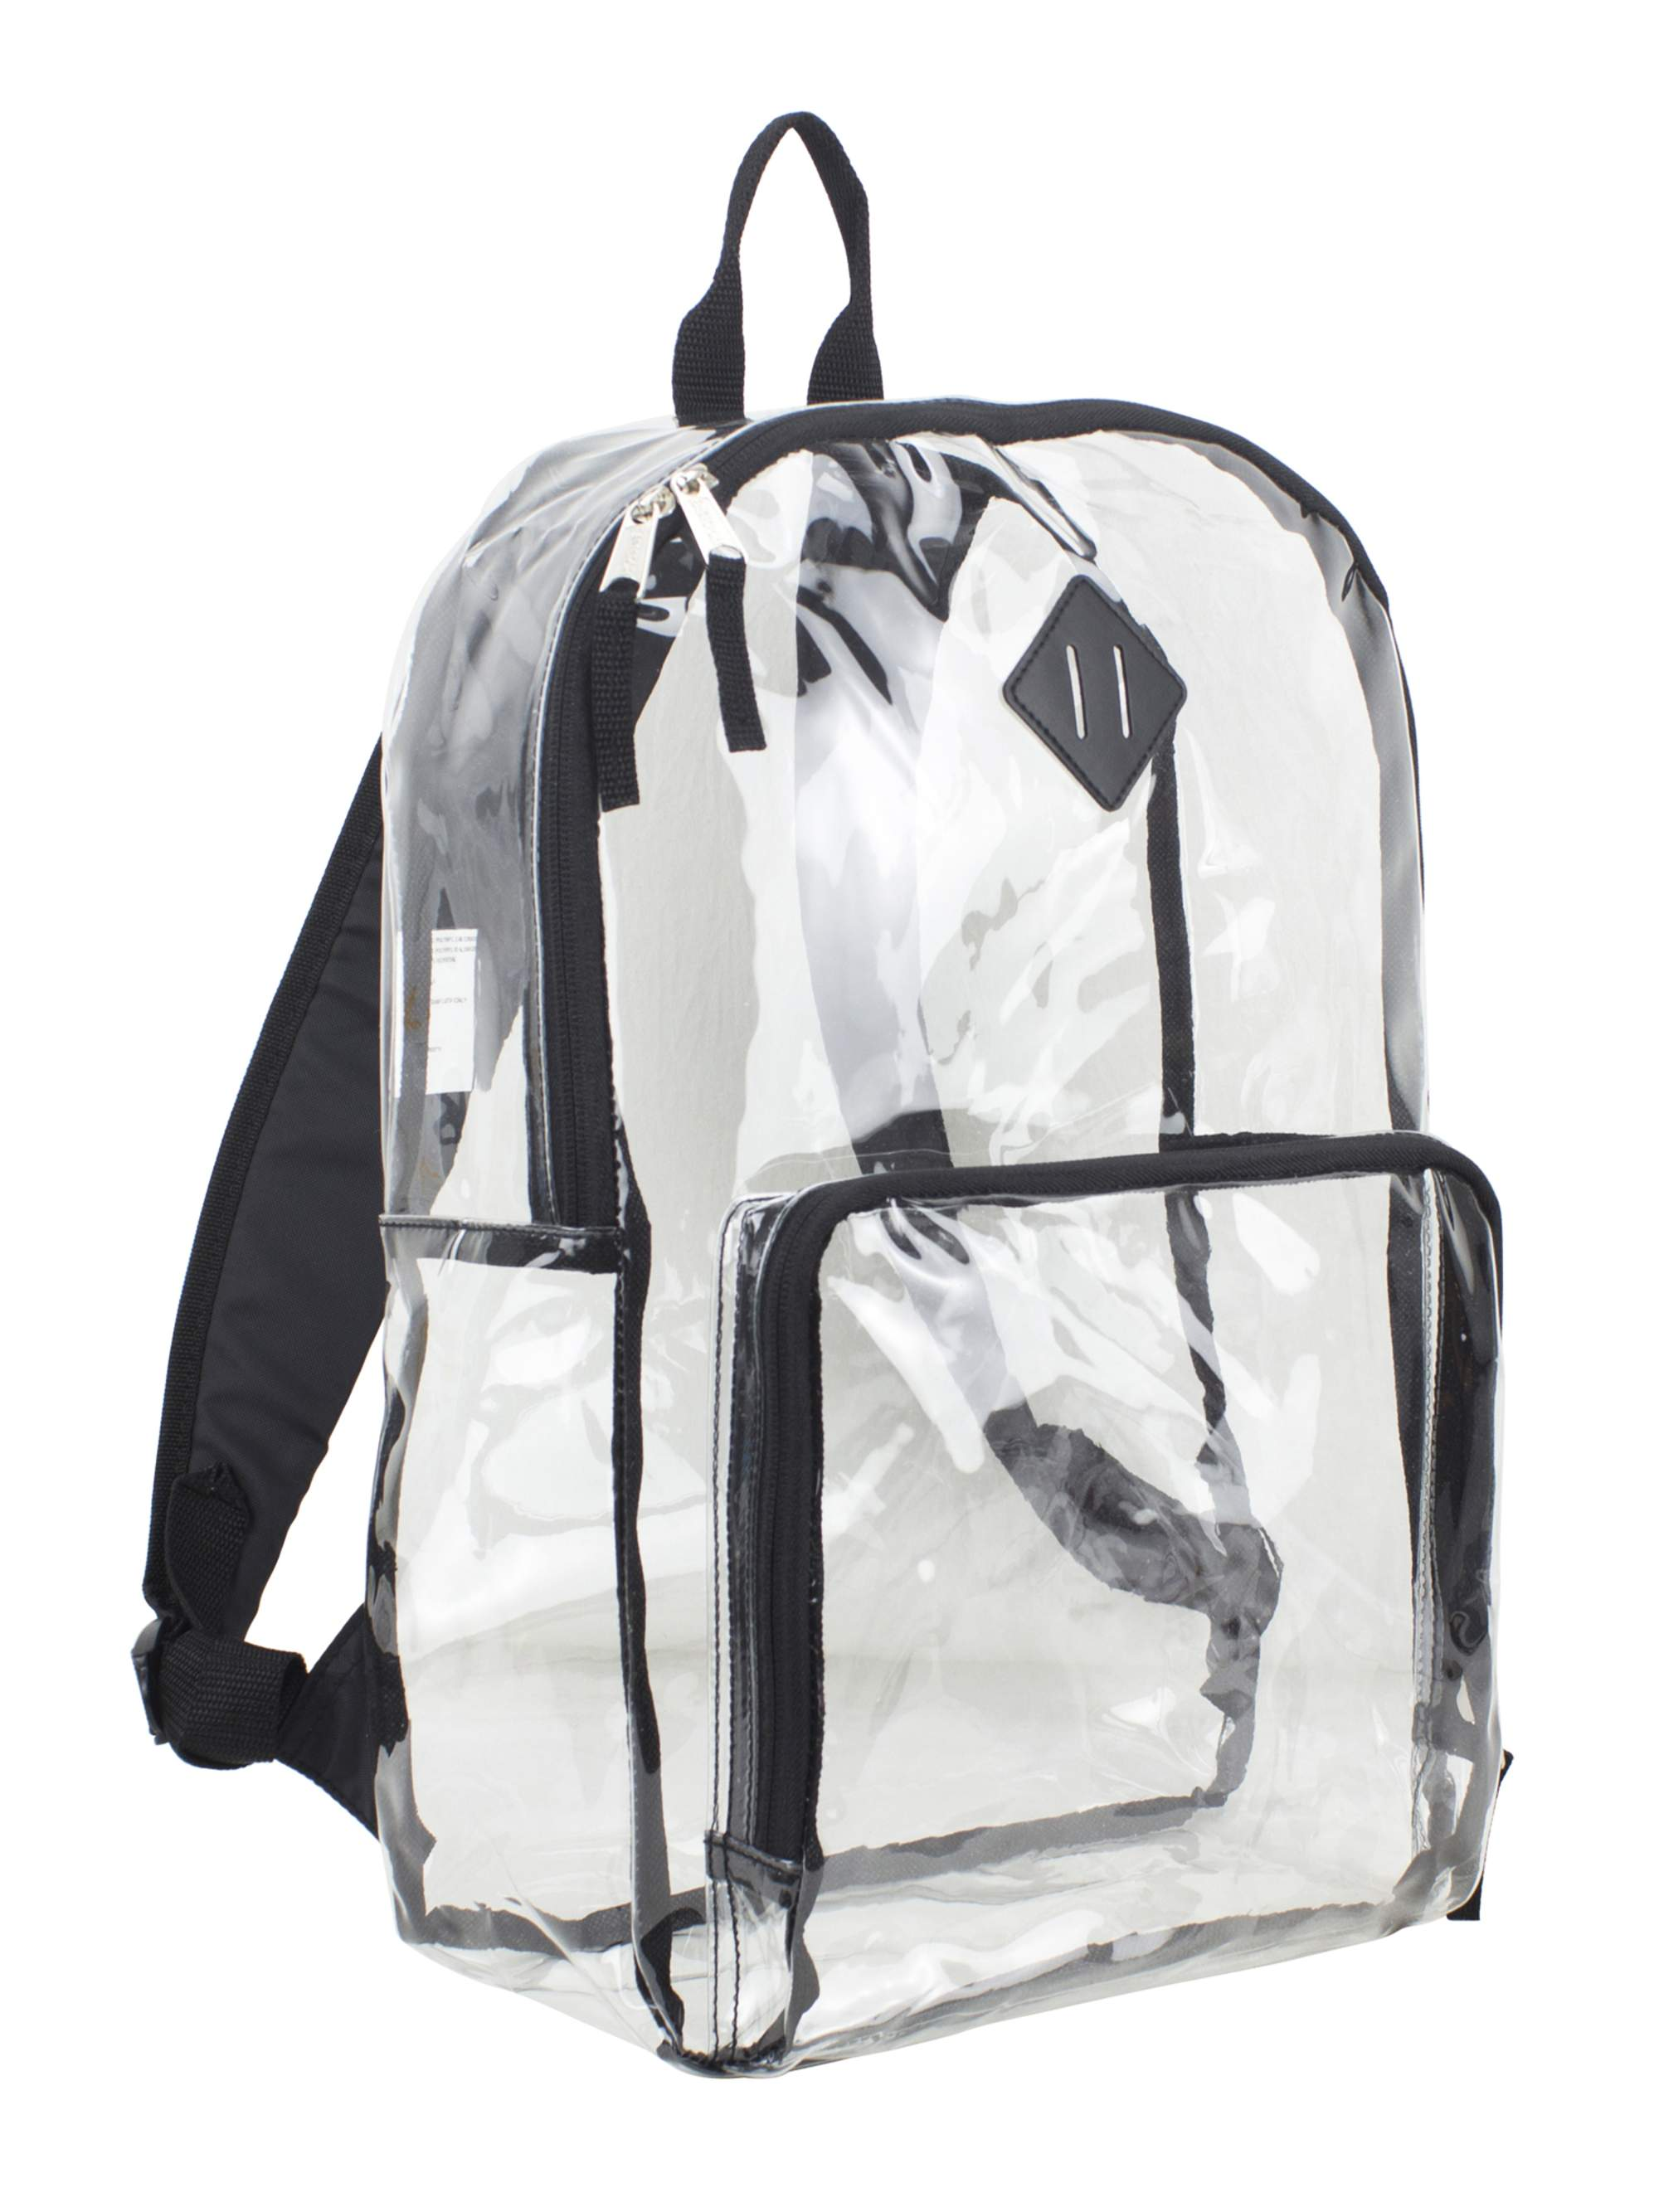 Eastsport Multipurpose Clear Backpack with Front Pocket, Adjustable Straps and Lash Tab by Generic